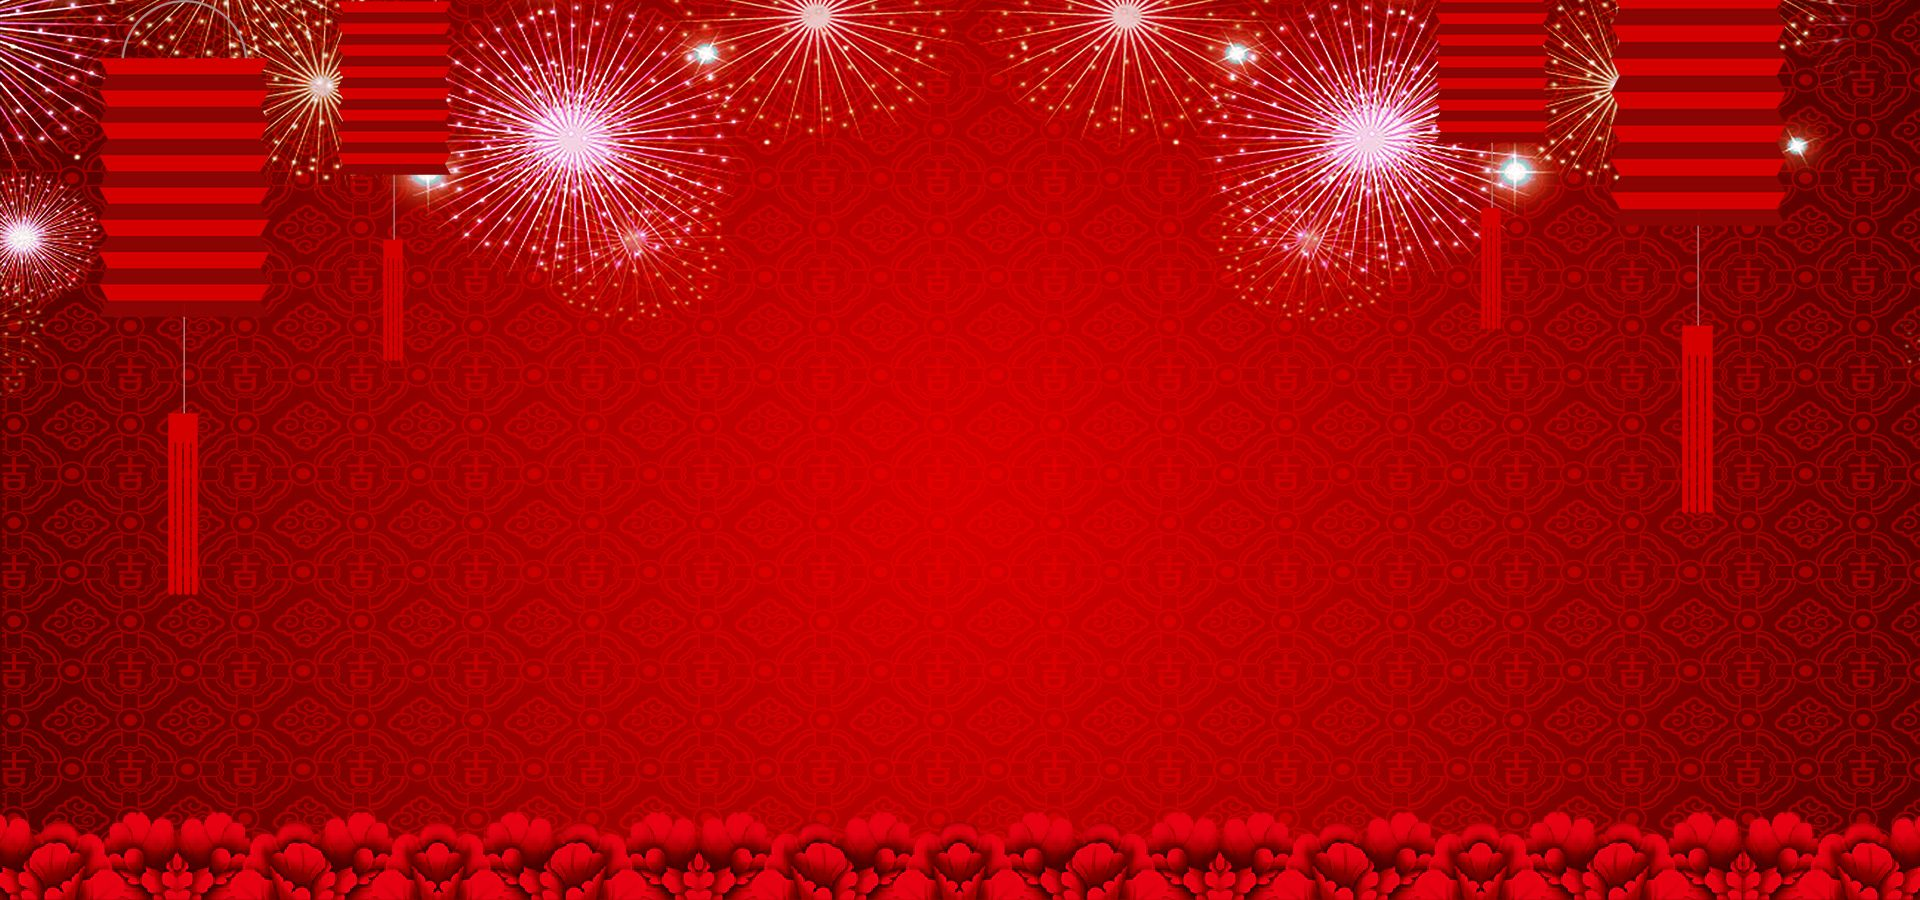 Chinese Calligraphy Wallpaper Hd Red Lanterns Chinese New Year Style Poster Background